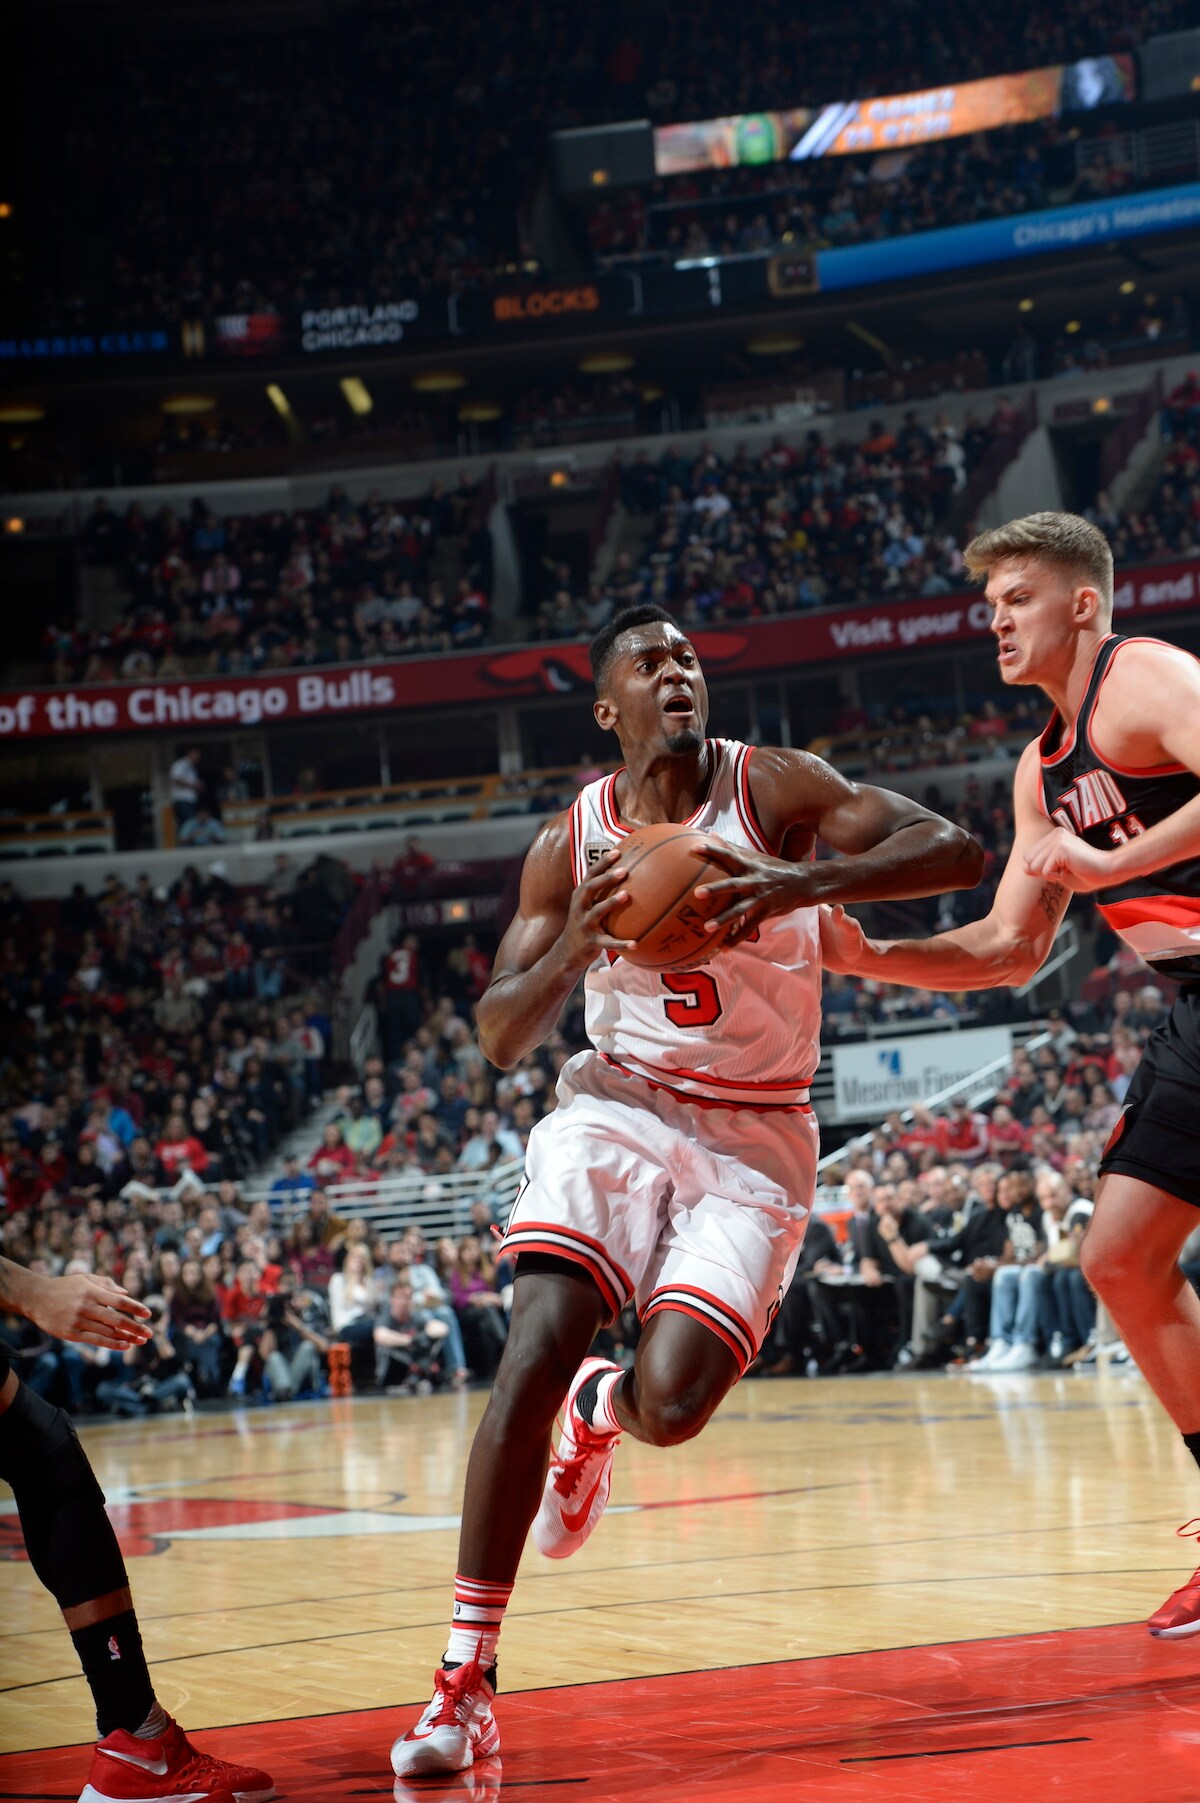 Bulls can t stay with Blazers in 103 95 loss in Chicago